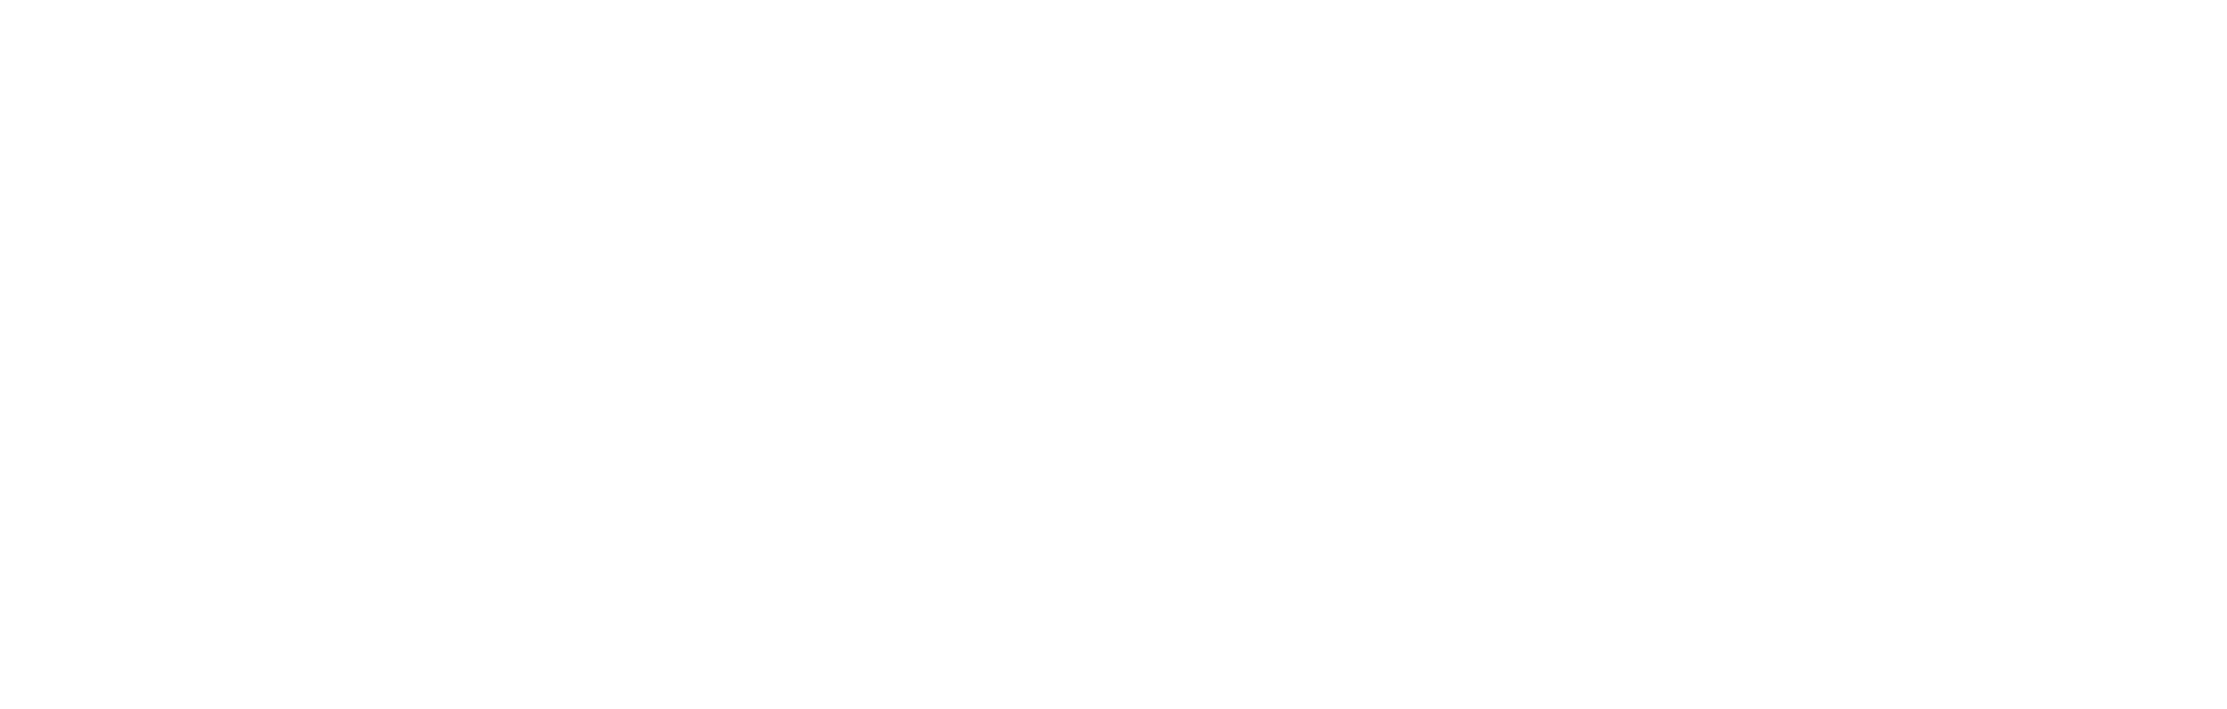 Finnish Institute in the UK and Ireland logo